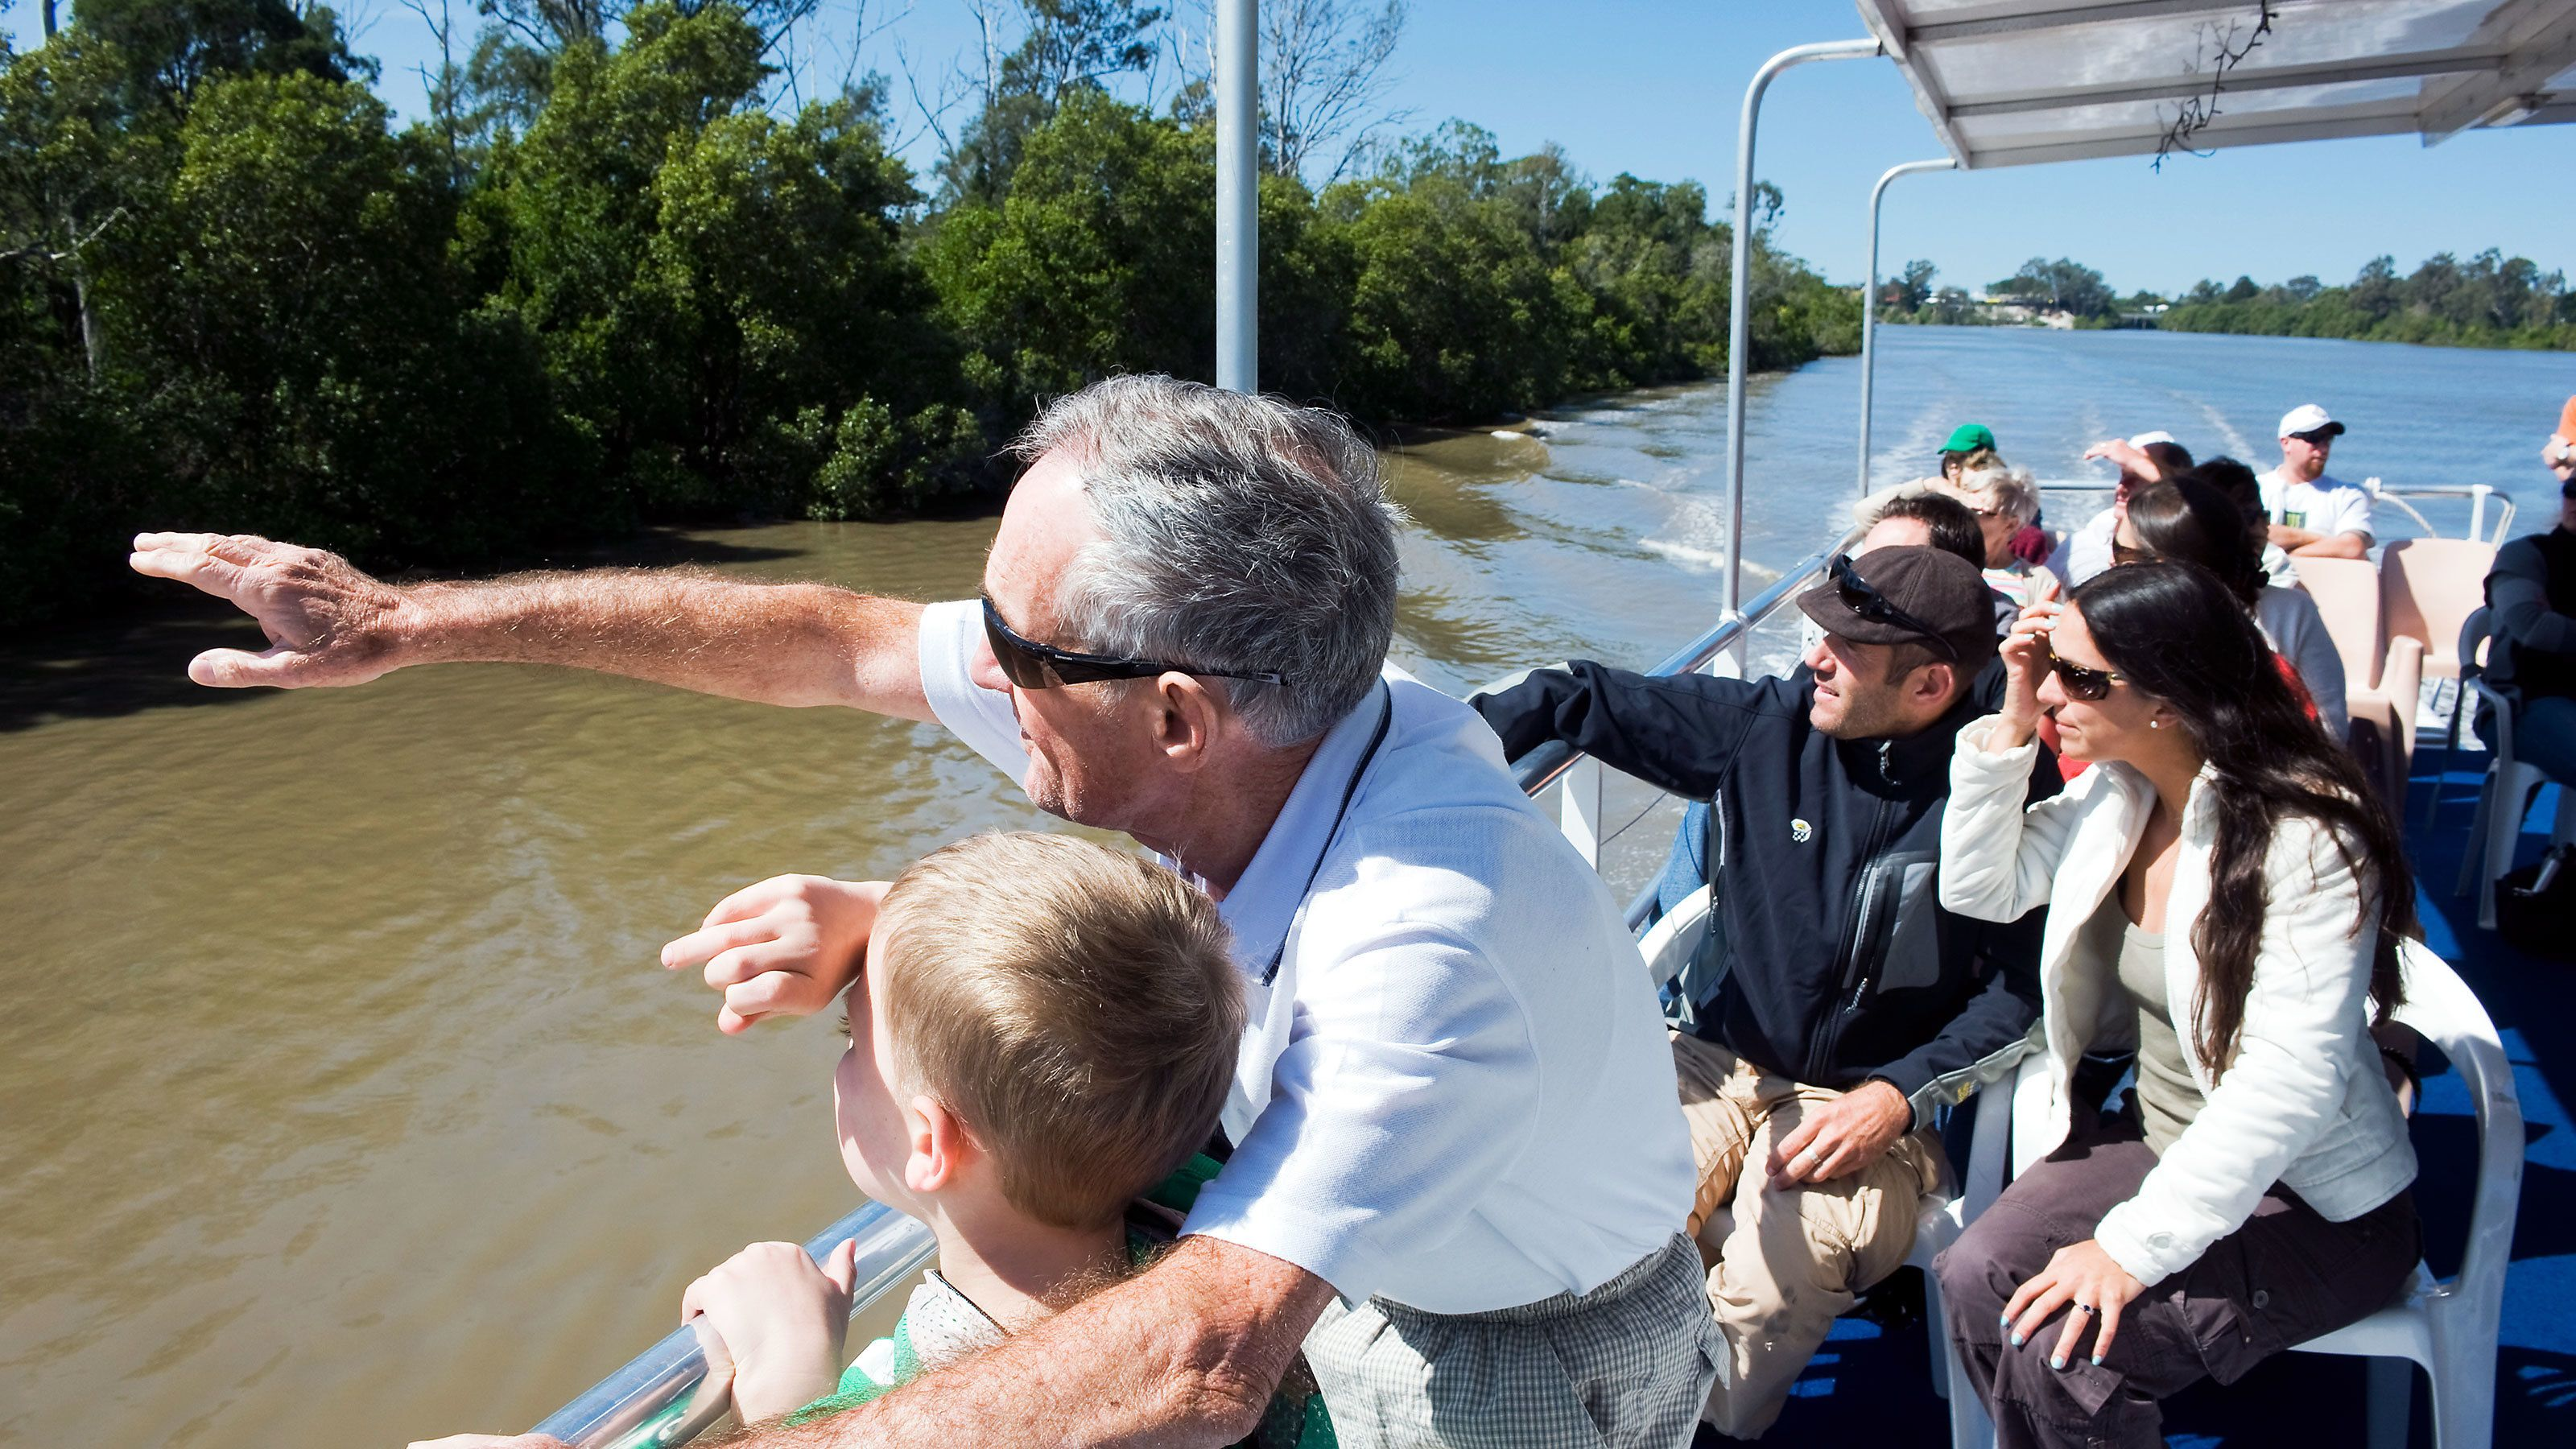 Looking out for Koalas on the river cruise in Brisbane